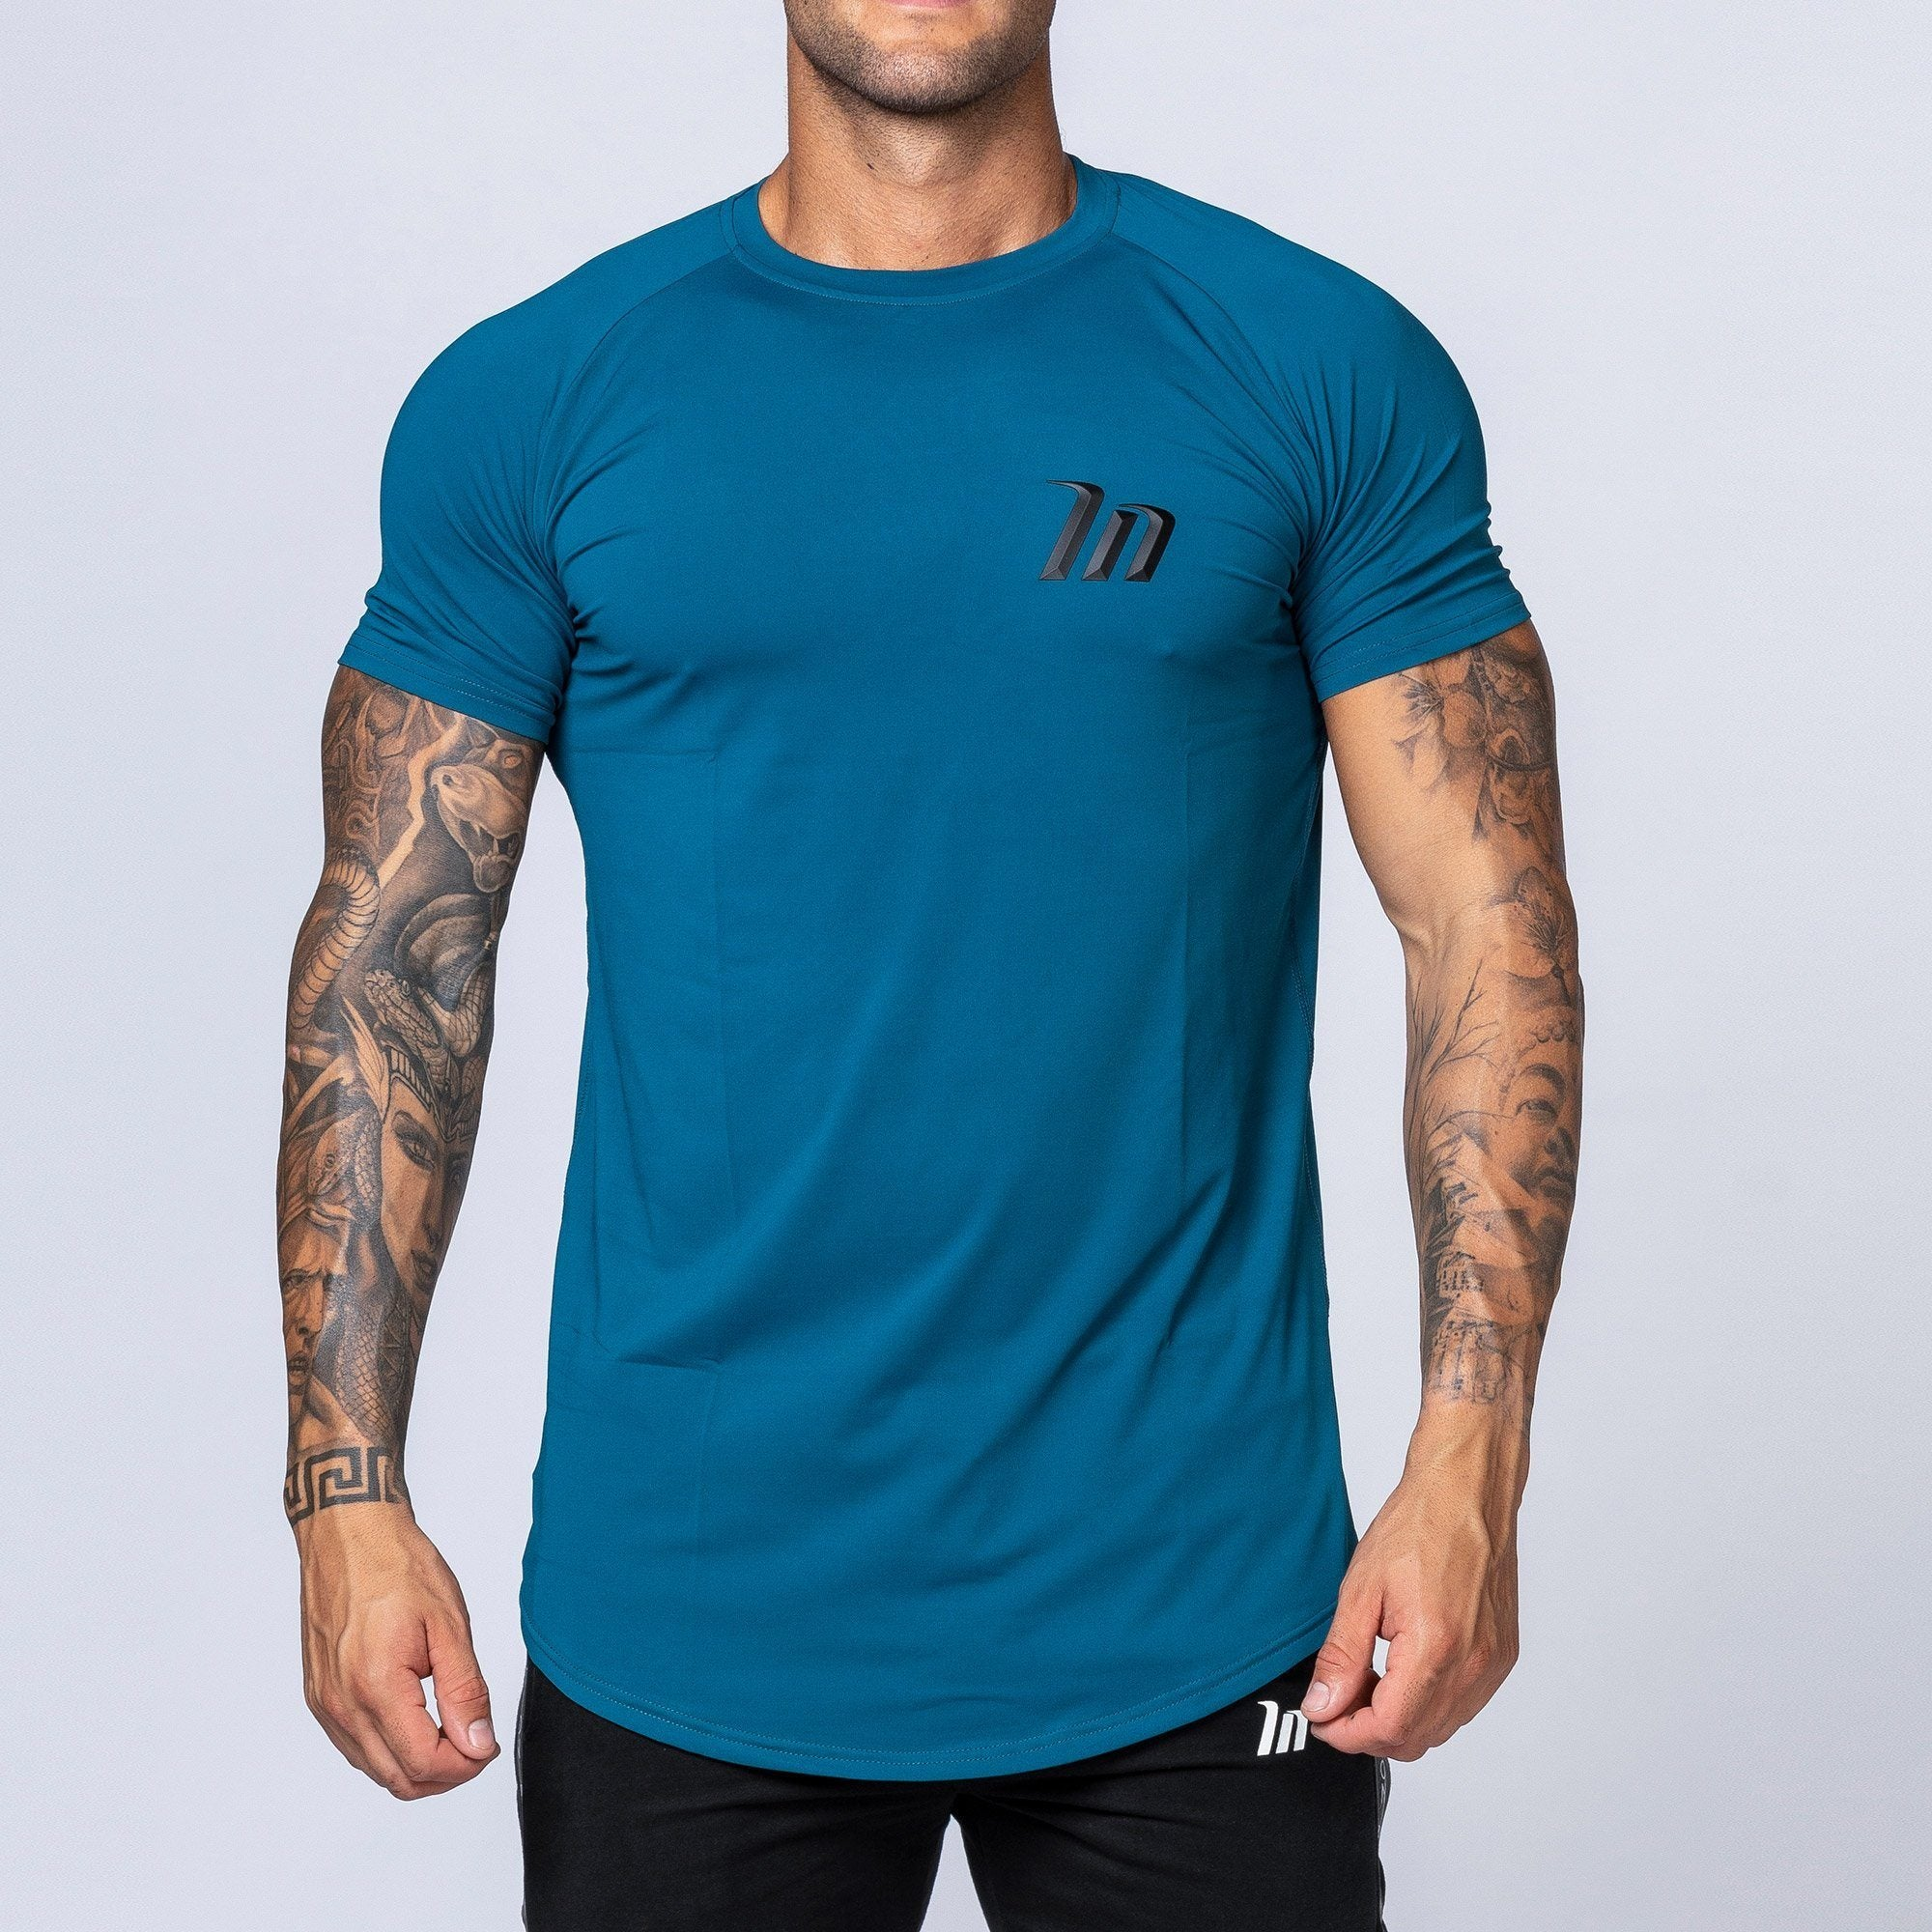 Muscle Nation ClimaFlex T-Shirt - Teal Blue